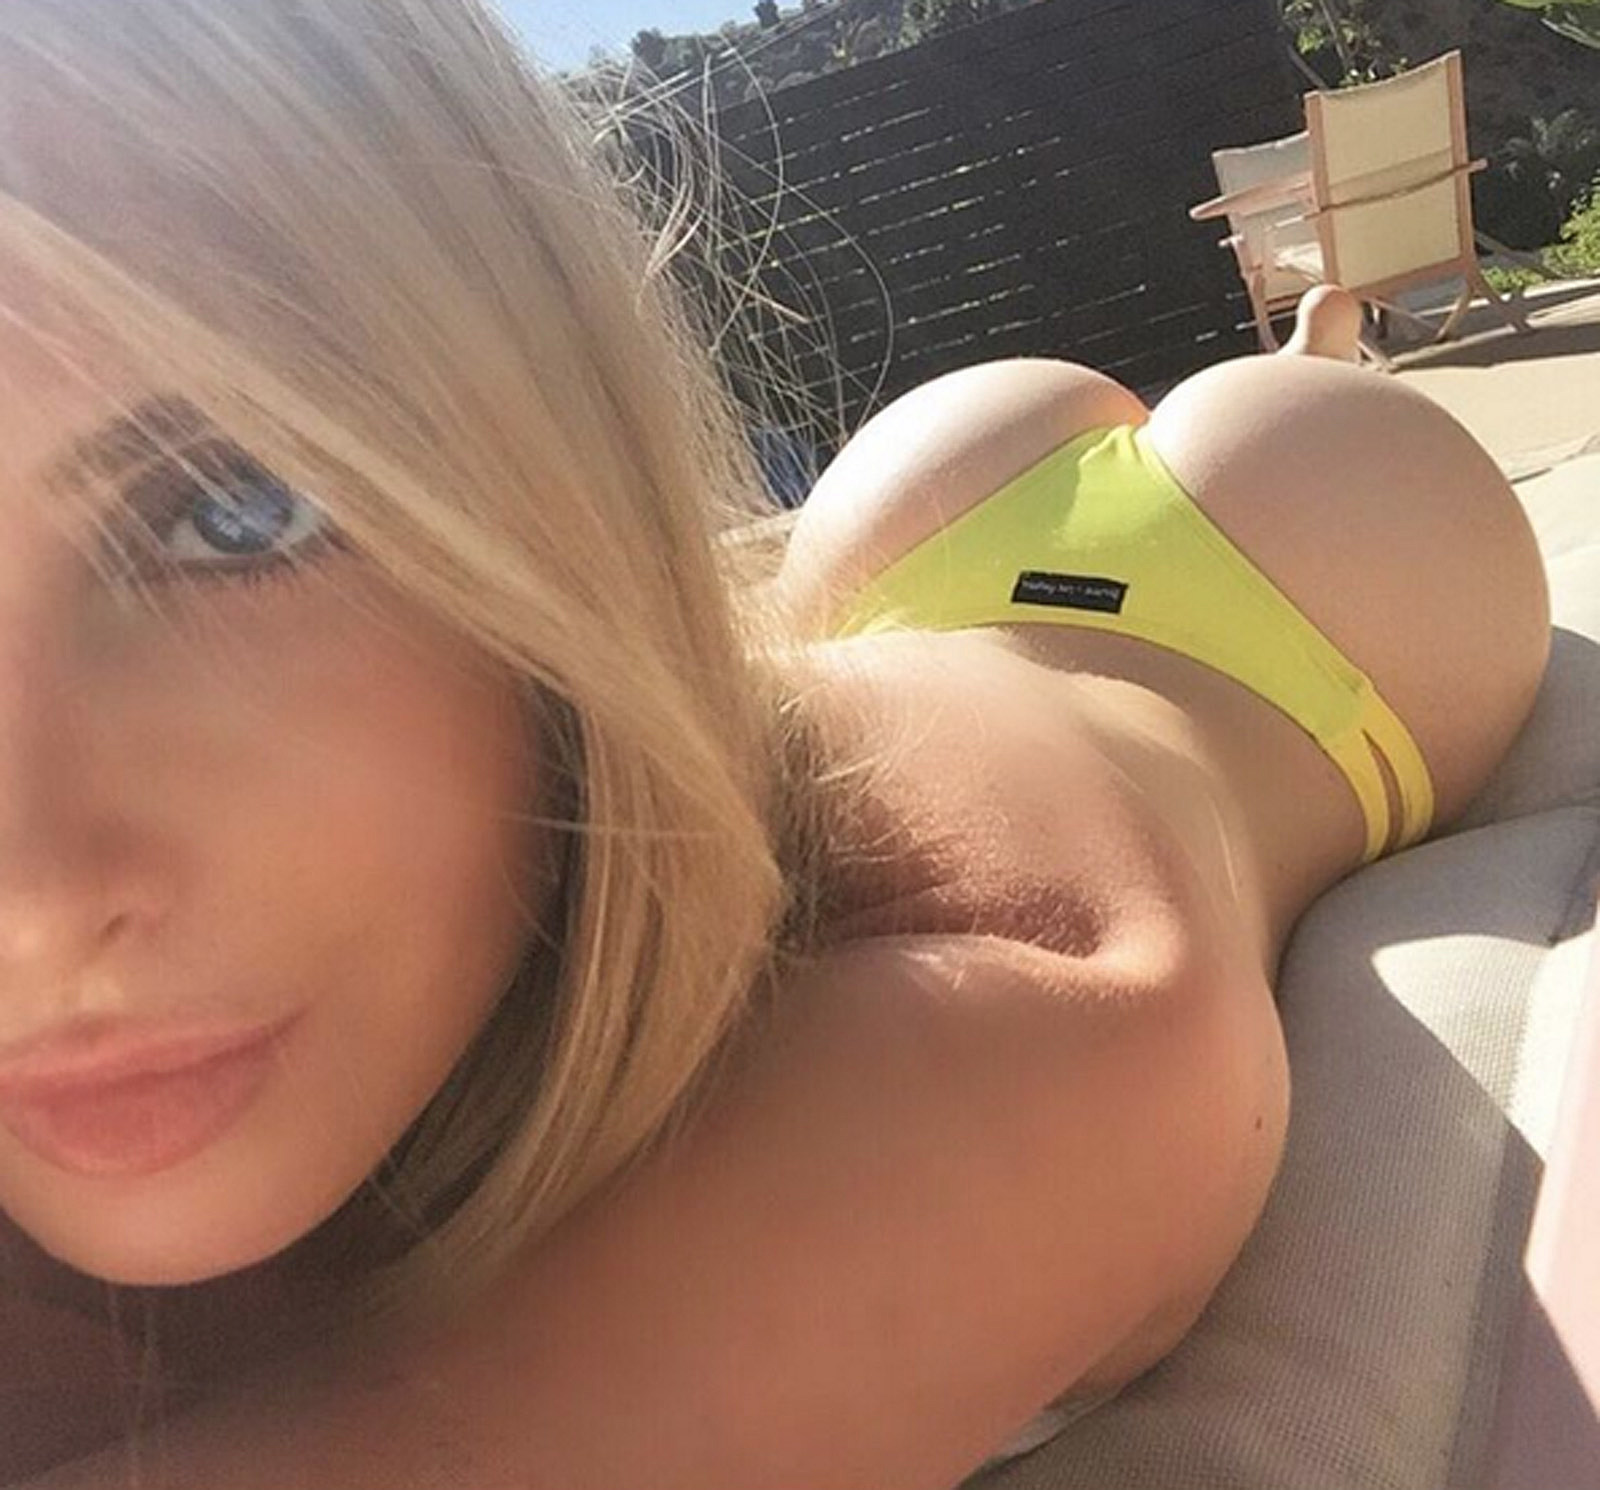 11 Sexy Photos Of Fitness Model Amanda Lee That Will Drive You Crazy